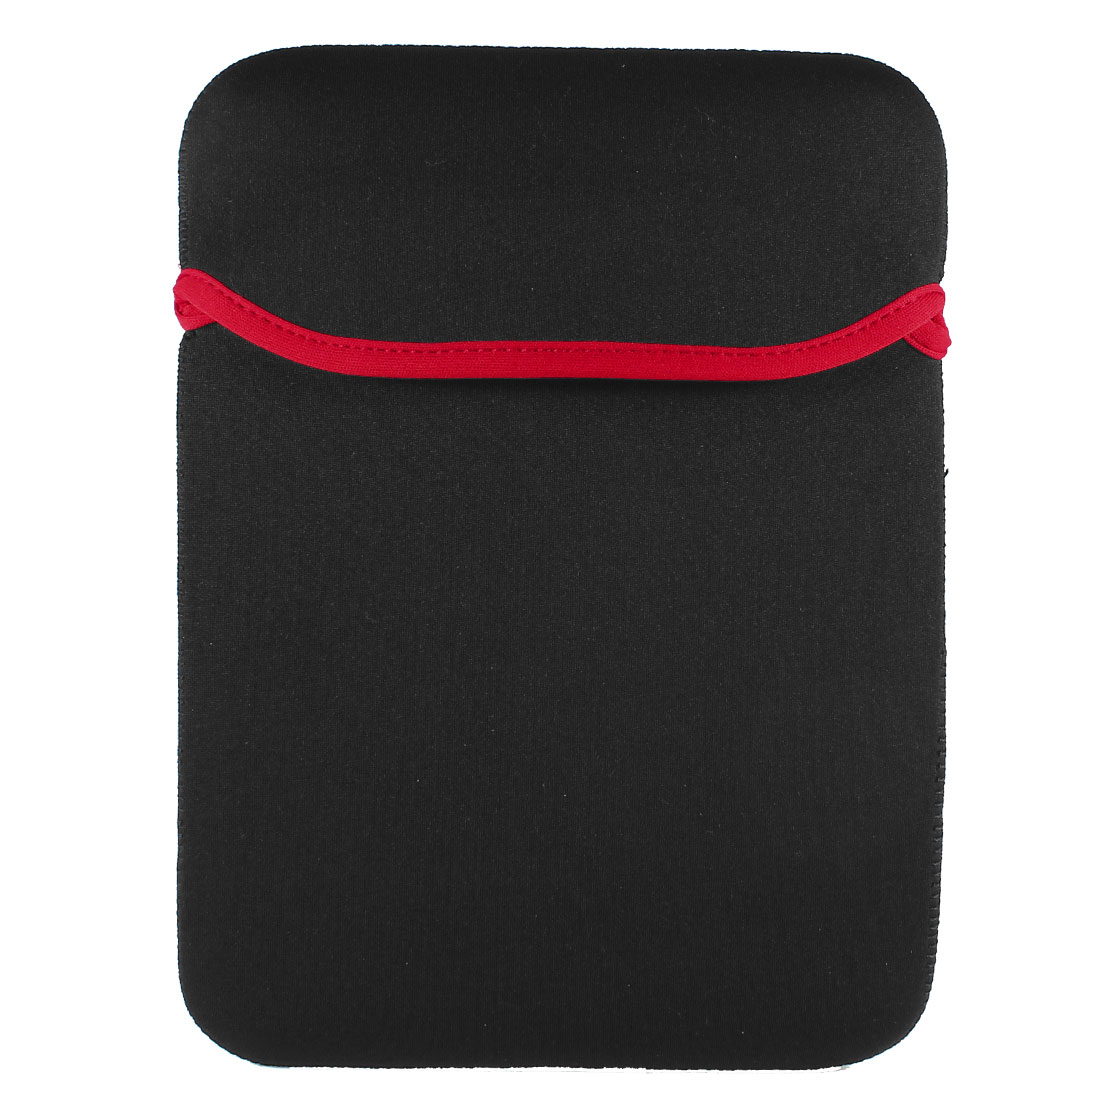 "Black Bag Pouch Sleeve Case Cover for 15"" 15.4"" 15.6"" Laptop Notebook Netbook PC"